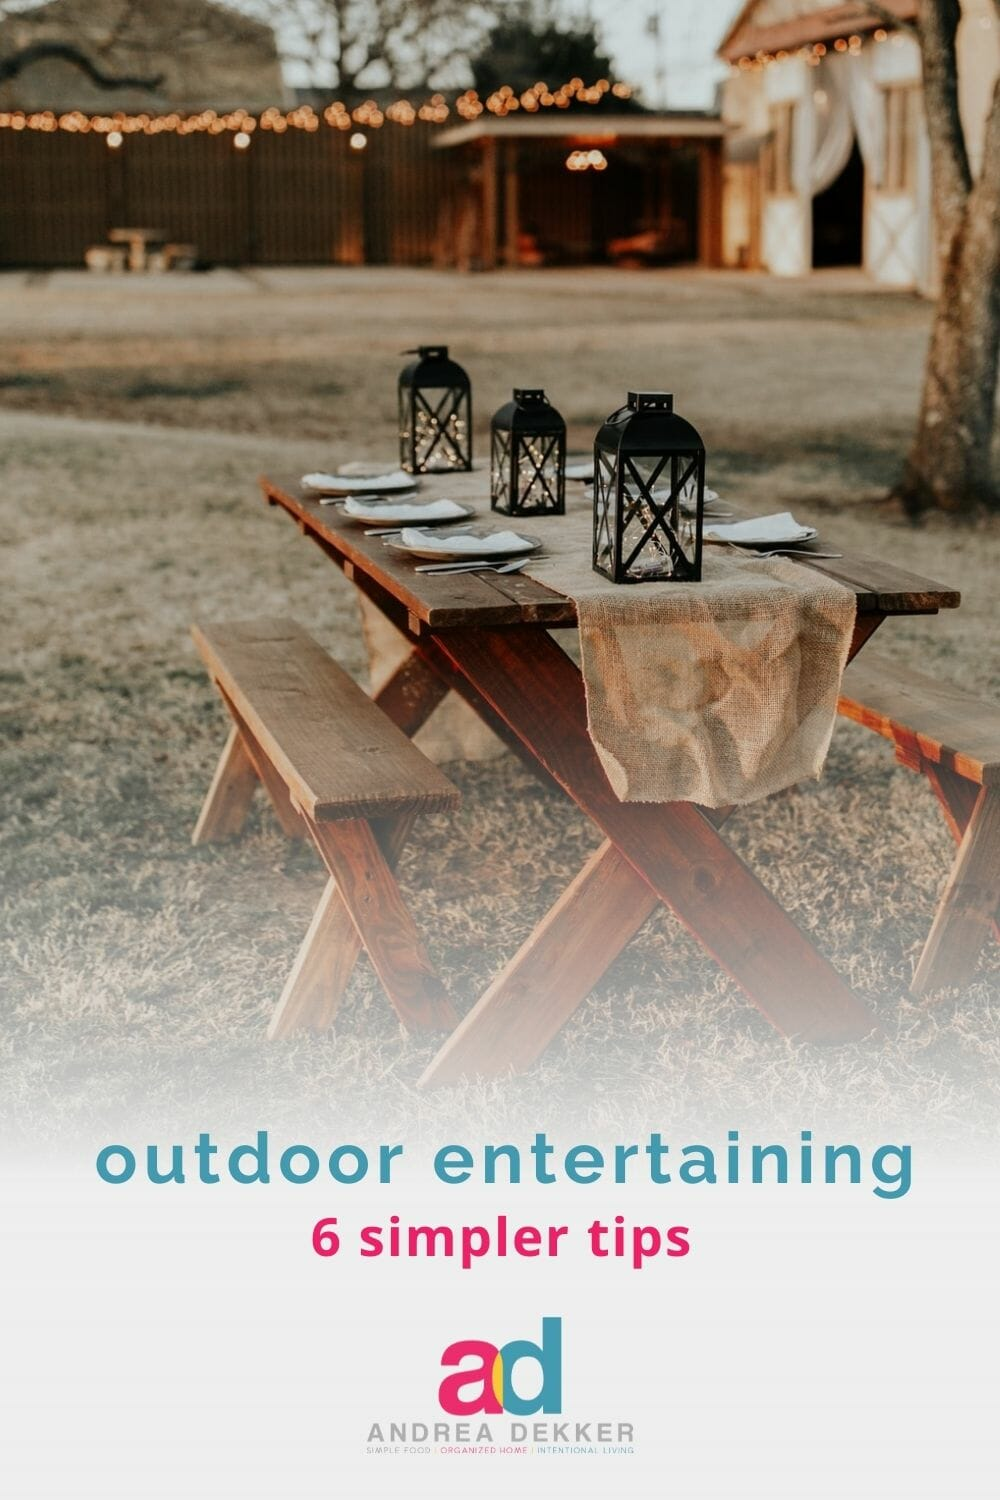 Do you love the idea of entertaining but feel too overwhelmed to invite others over? If so, my tips for simpler outdoor entertaining will help! via @andreadekker